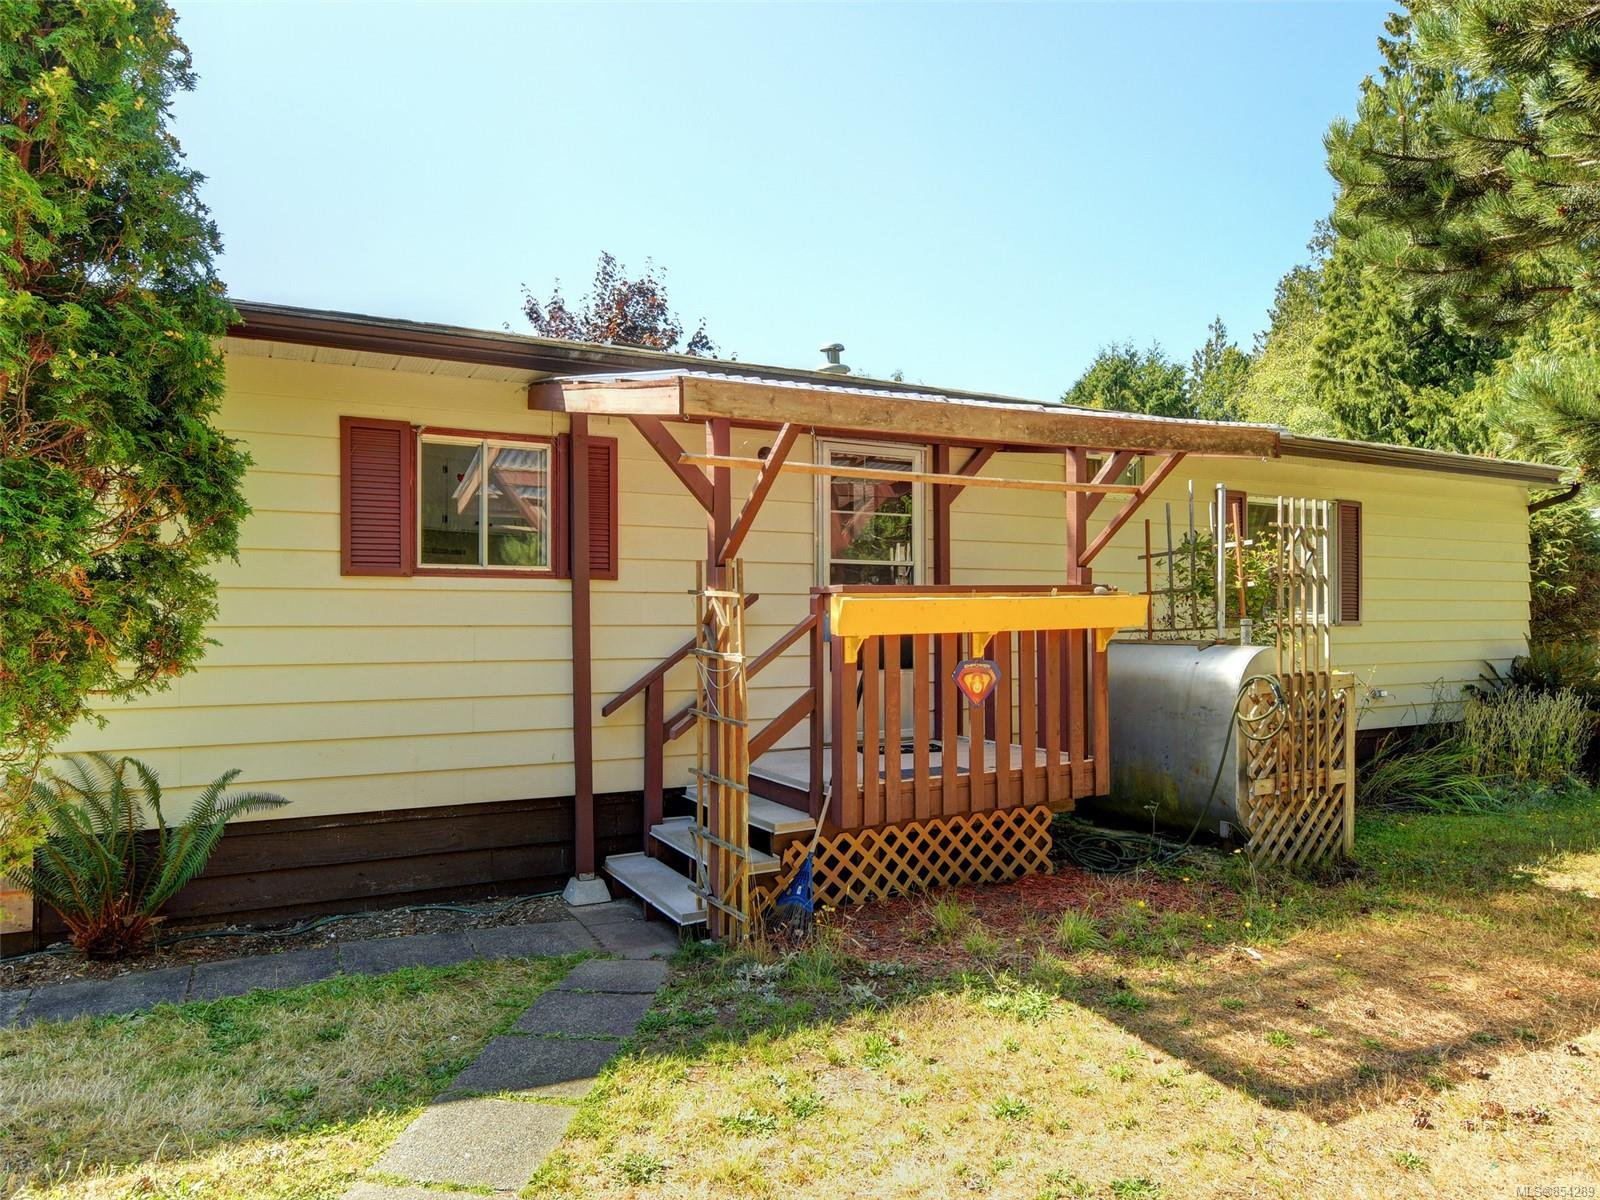 Main Photo: 19 2357 Sooke River Rd in : Sk Sooke River Manufactured Home for sale (Sooke)  : MLS®# 854289